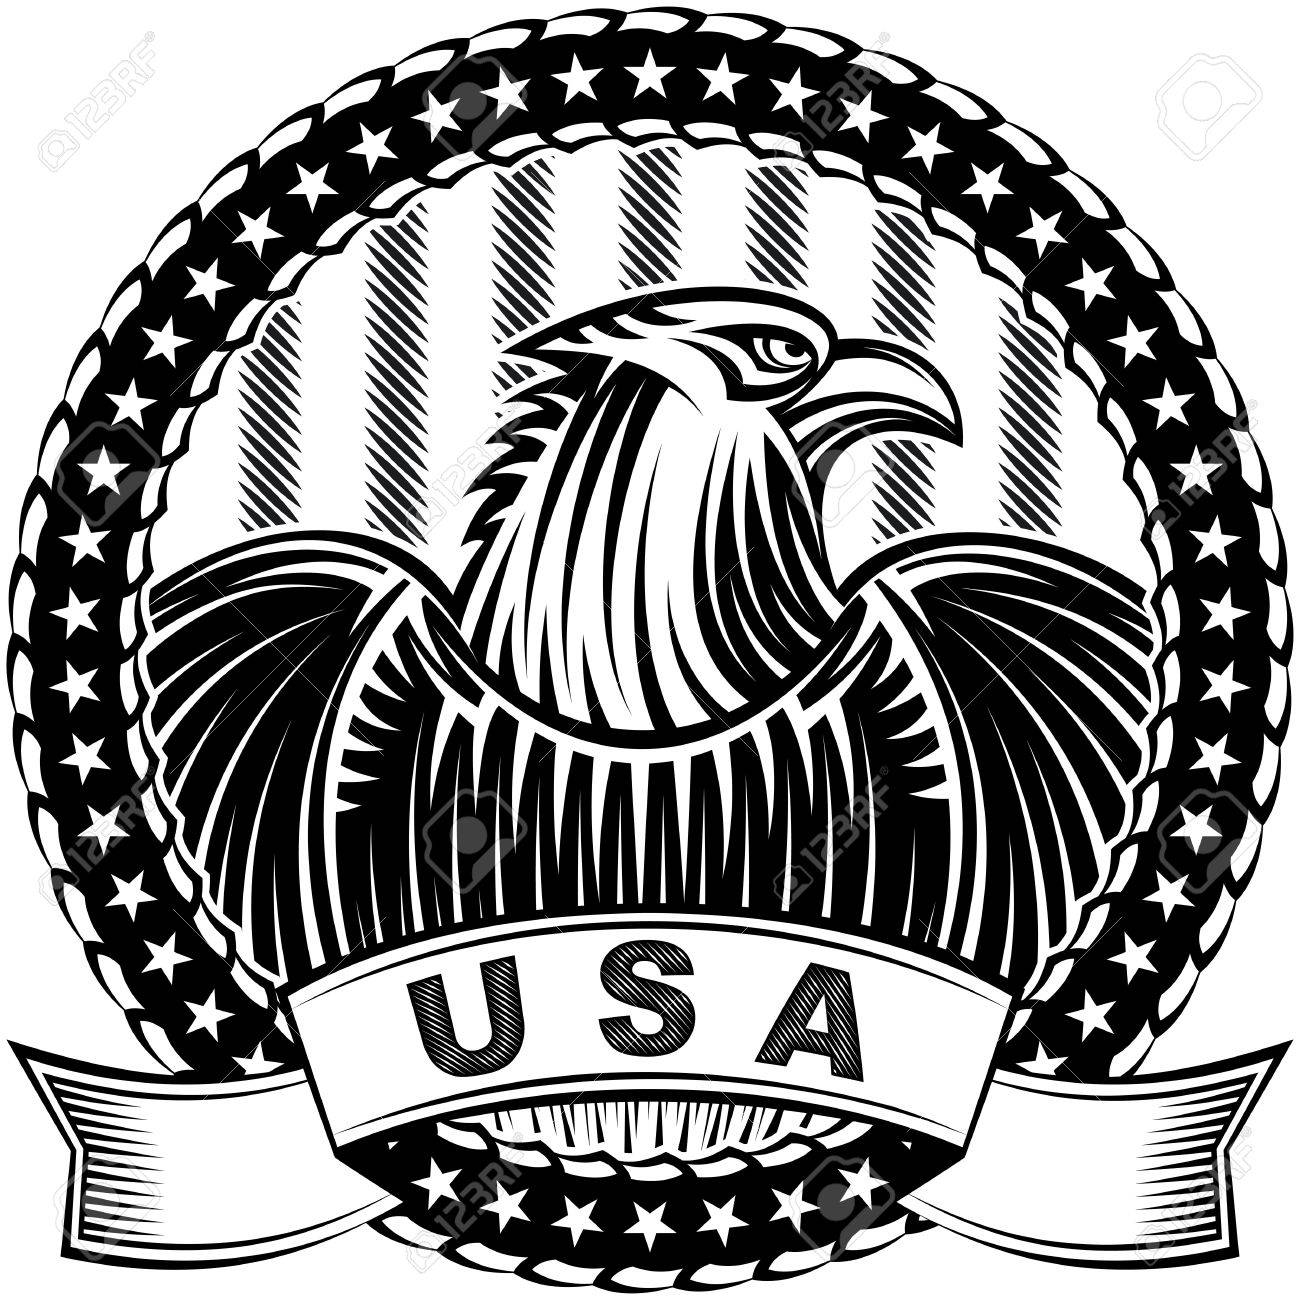 1300x1300 American Eagle With Stars And Stripes As A Symbol